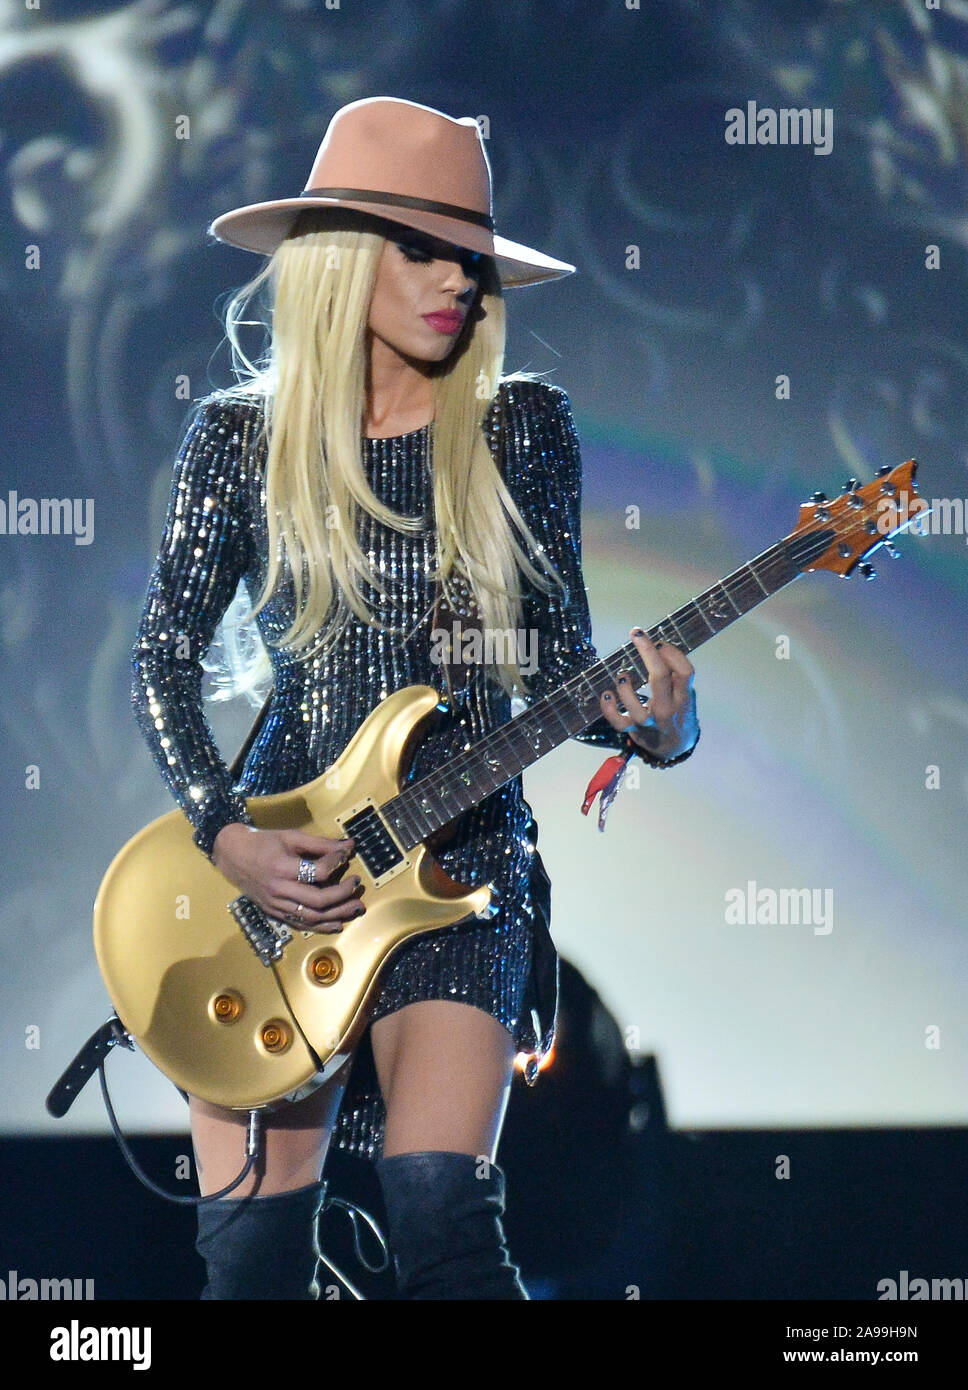 """Las Vegas, United States. 13th Nov, 2019. Musician Orianthi performs """"Nada Valgo Sin Tu Amor"""" onstage at the Latin Grammy Person of the Year gala honoring Columbian singer Juanes at the MGM Grand Convention Center in Las Vegas, Nevada on Wednesday, November 13, 2019. Photo by Jim Ruymen/UPI Credit: UPI/Alamy Live News Stock Photo"""